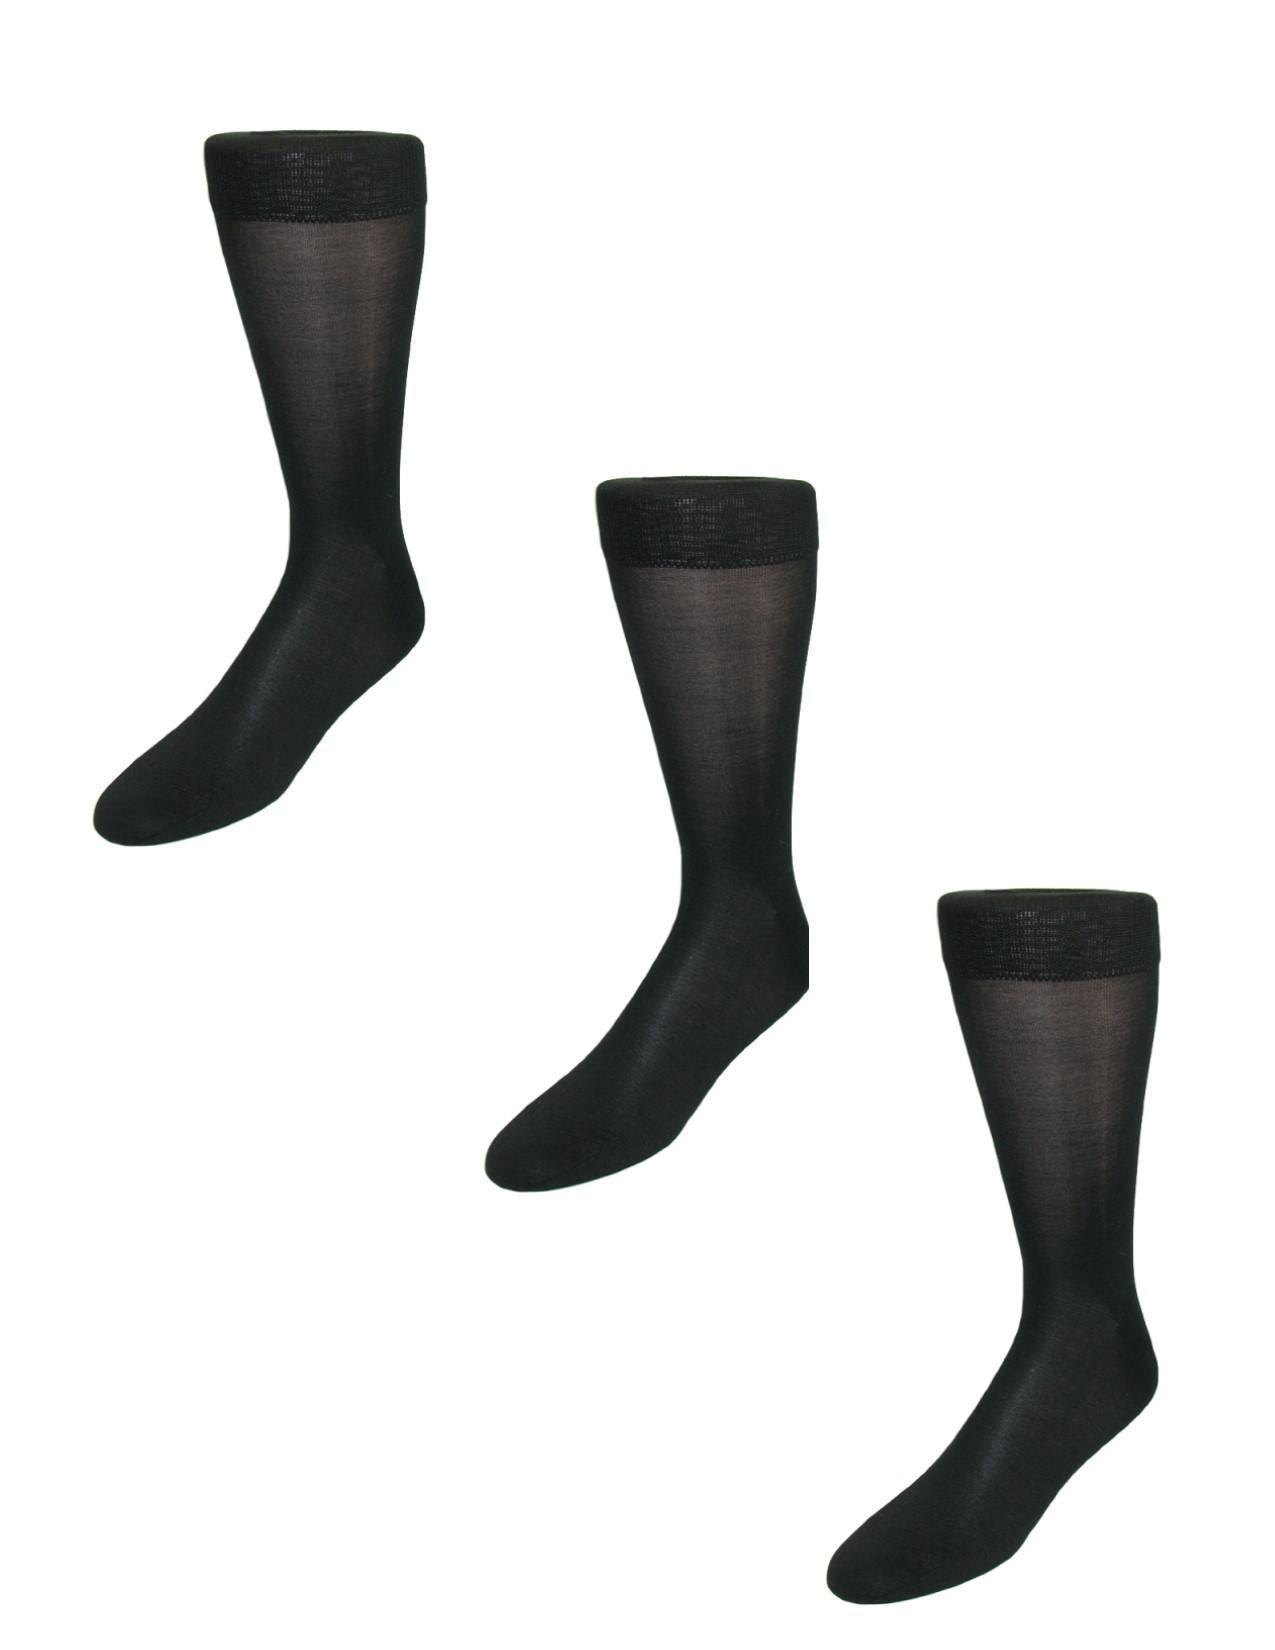 Windsor_Collection_Mens_Silk_Mid_Calf_Dress_Socks_Pack_of_3_